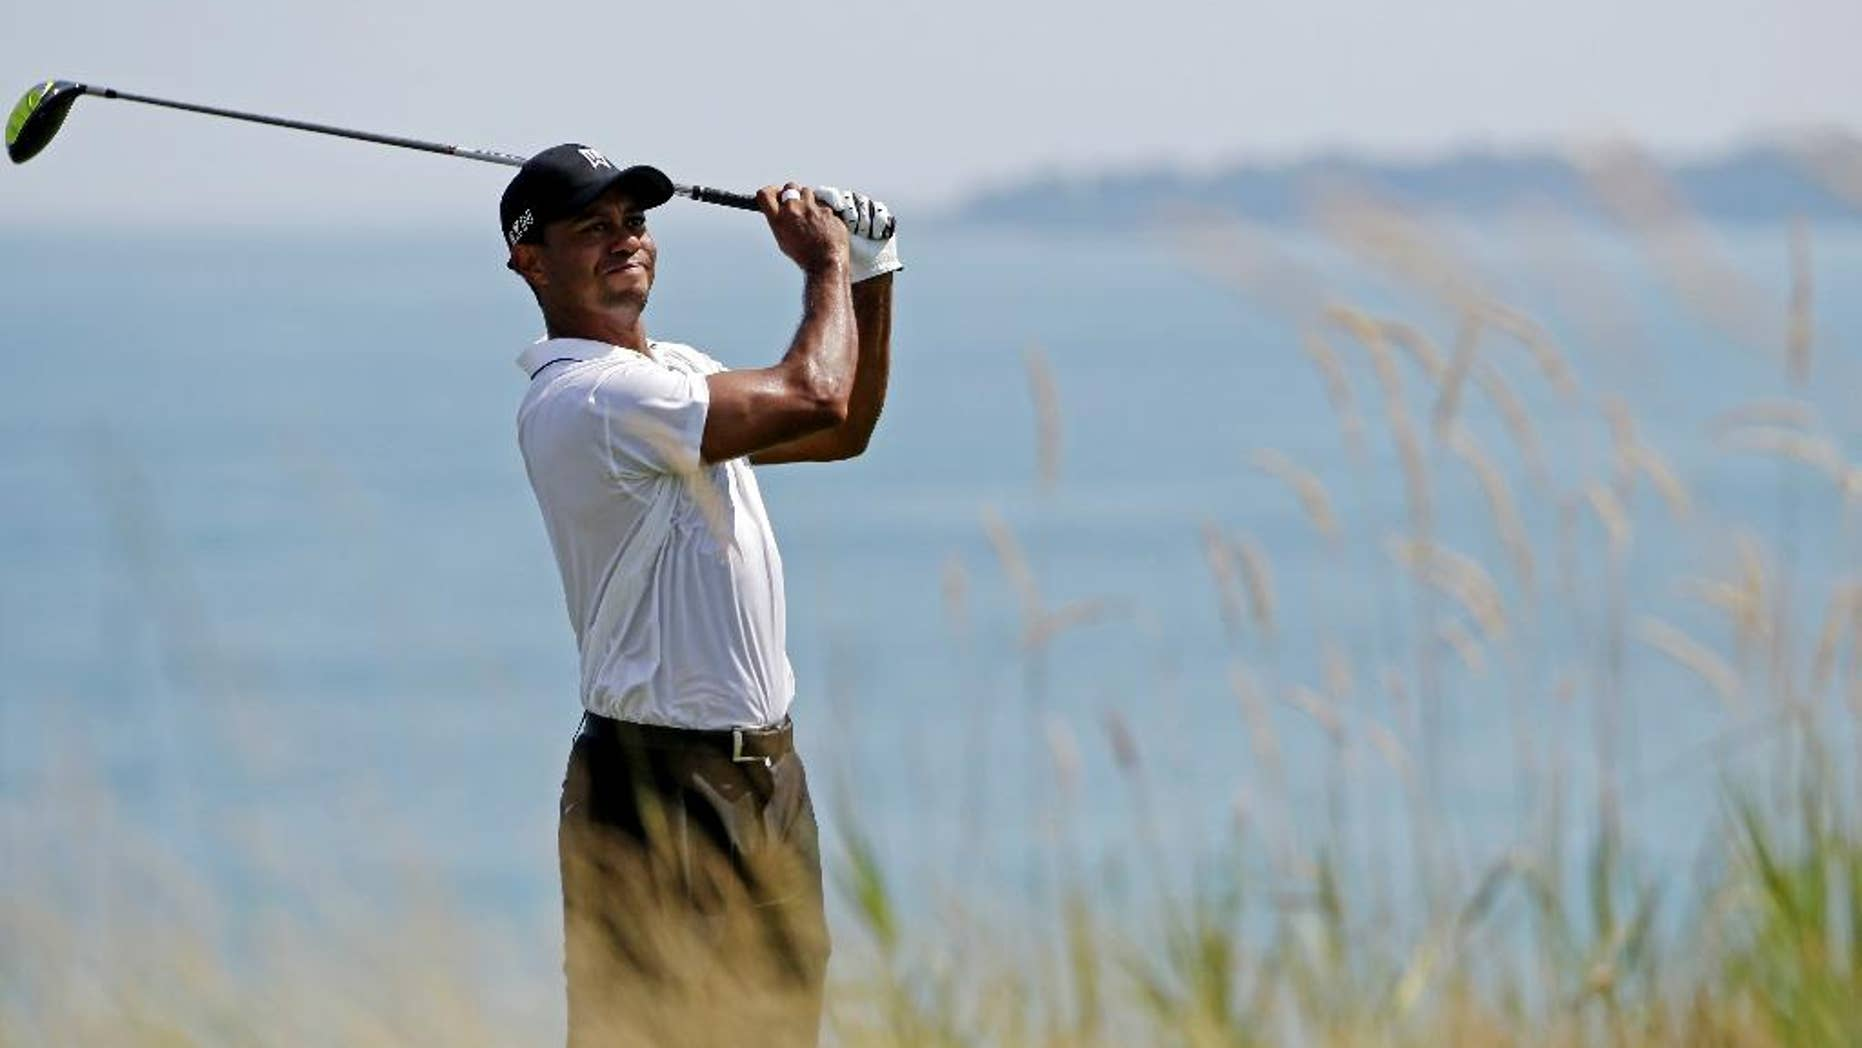 Tiger Woods hits on the fifth hole during the second round of the PGA Championship golf tournament Friday, Aug. 14, 2015, at Whistling Straits in Haven, Wis. (AP Photo/Brynn Anderson)